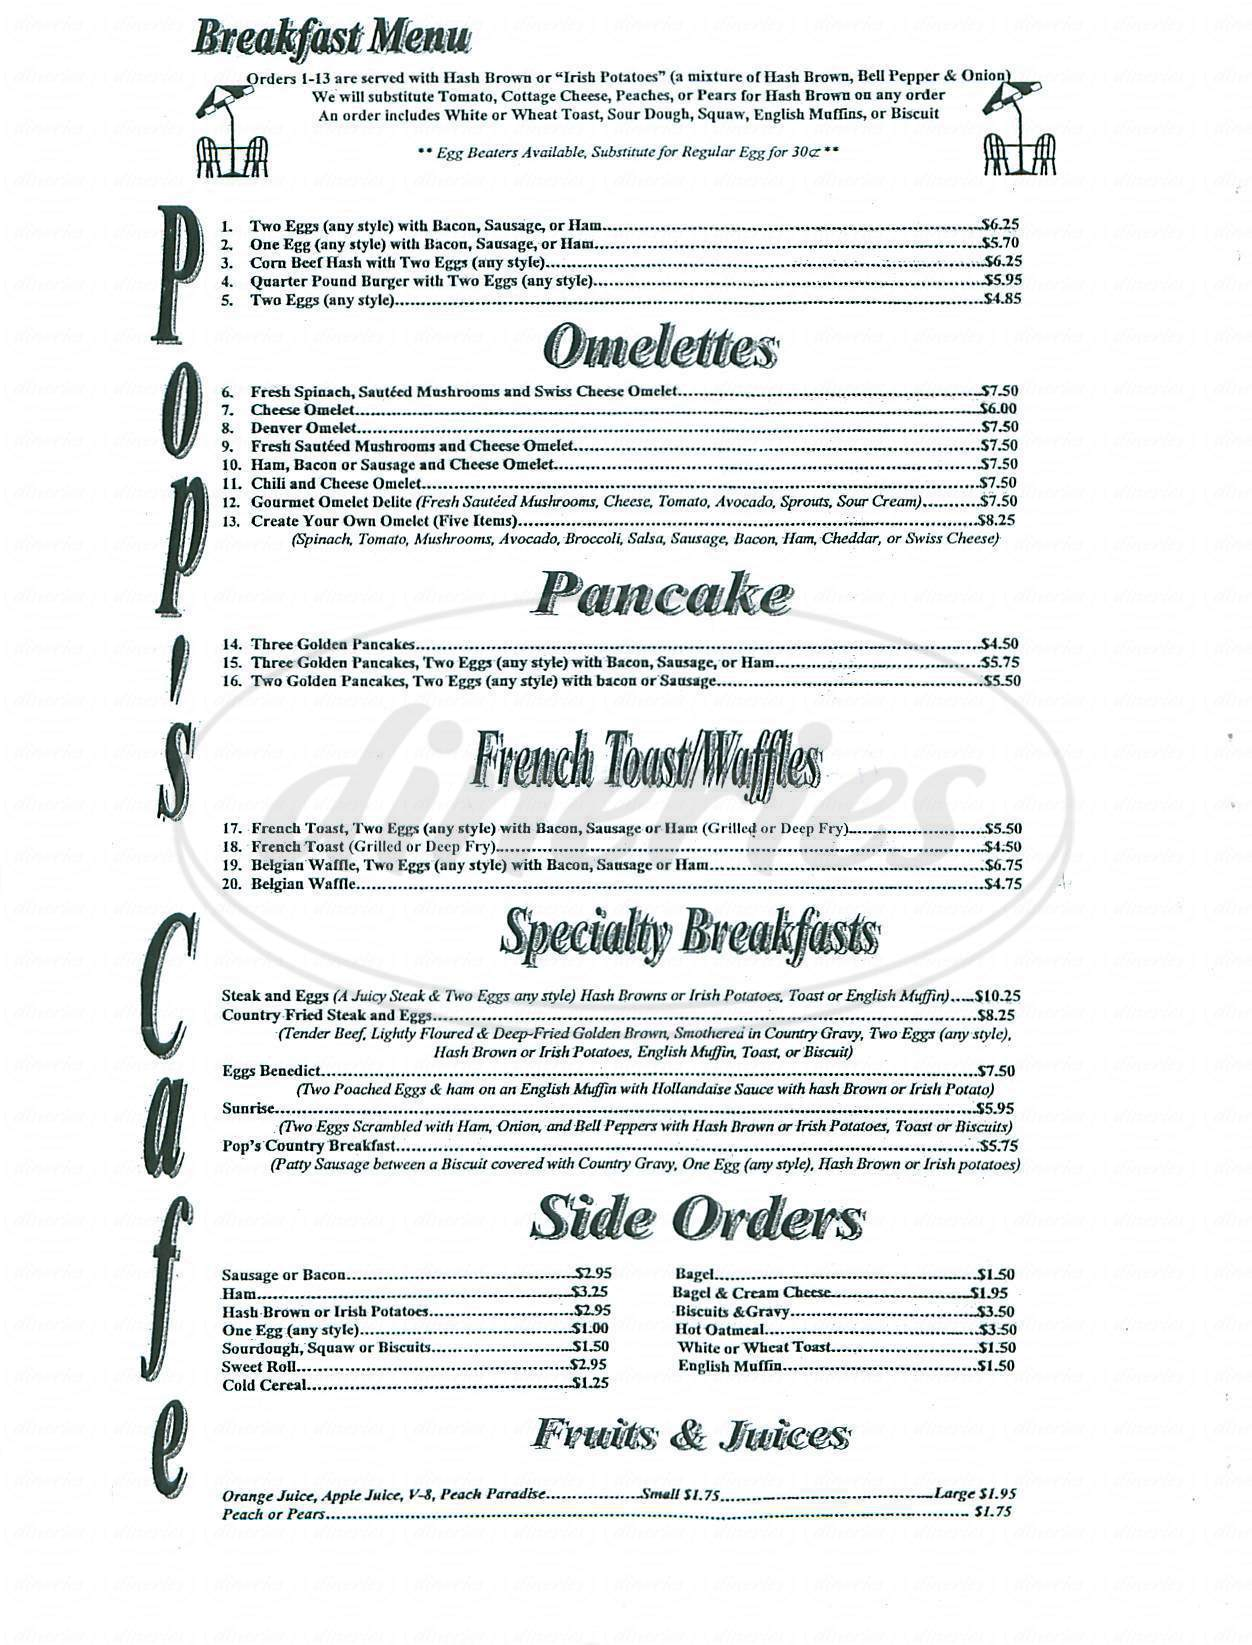 menu for Pops Cafe